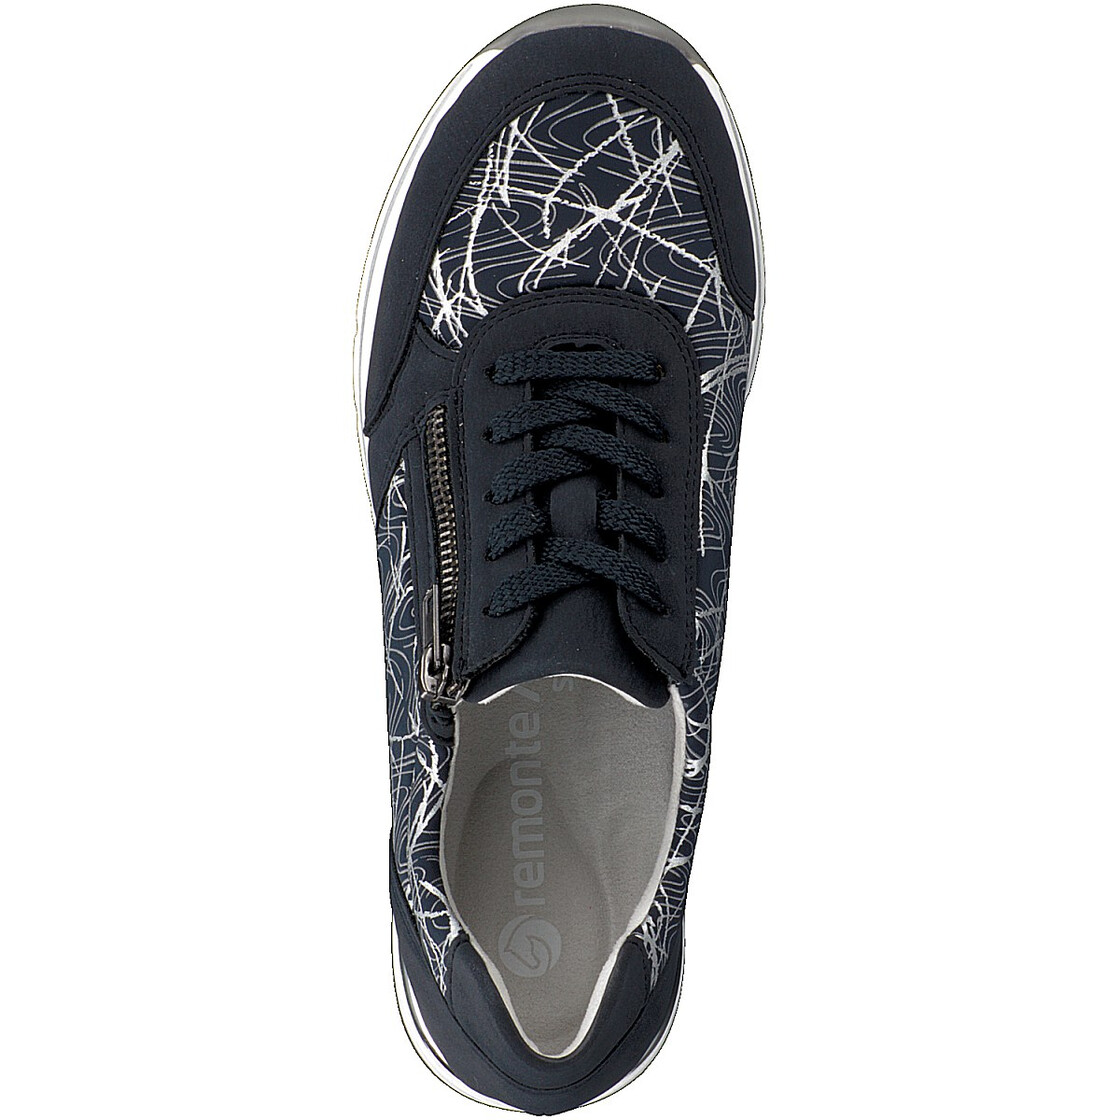 R6700 Remonte navy and silver laced trainers.